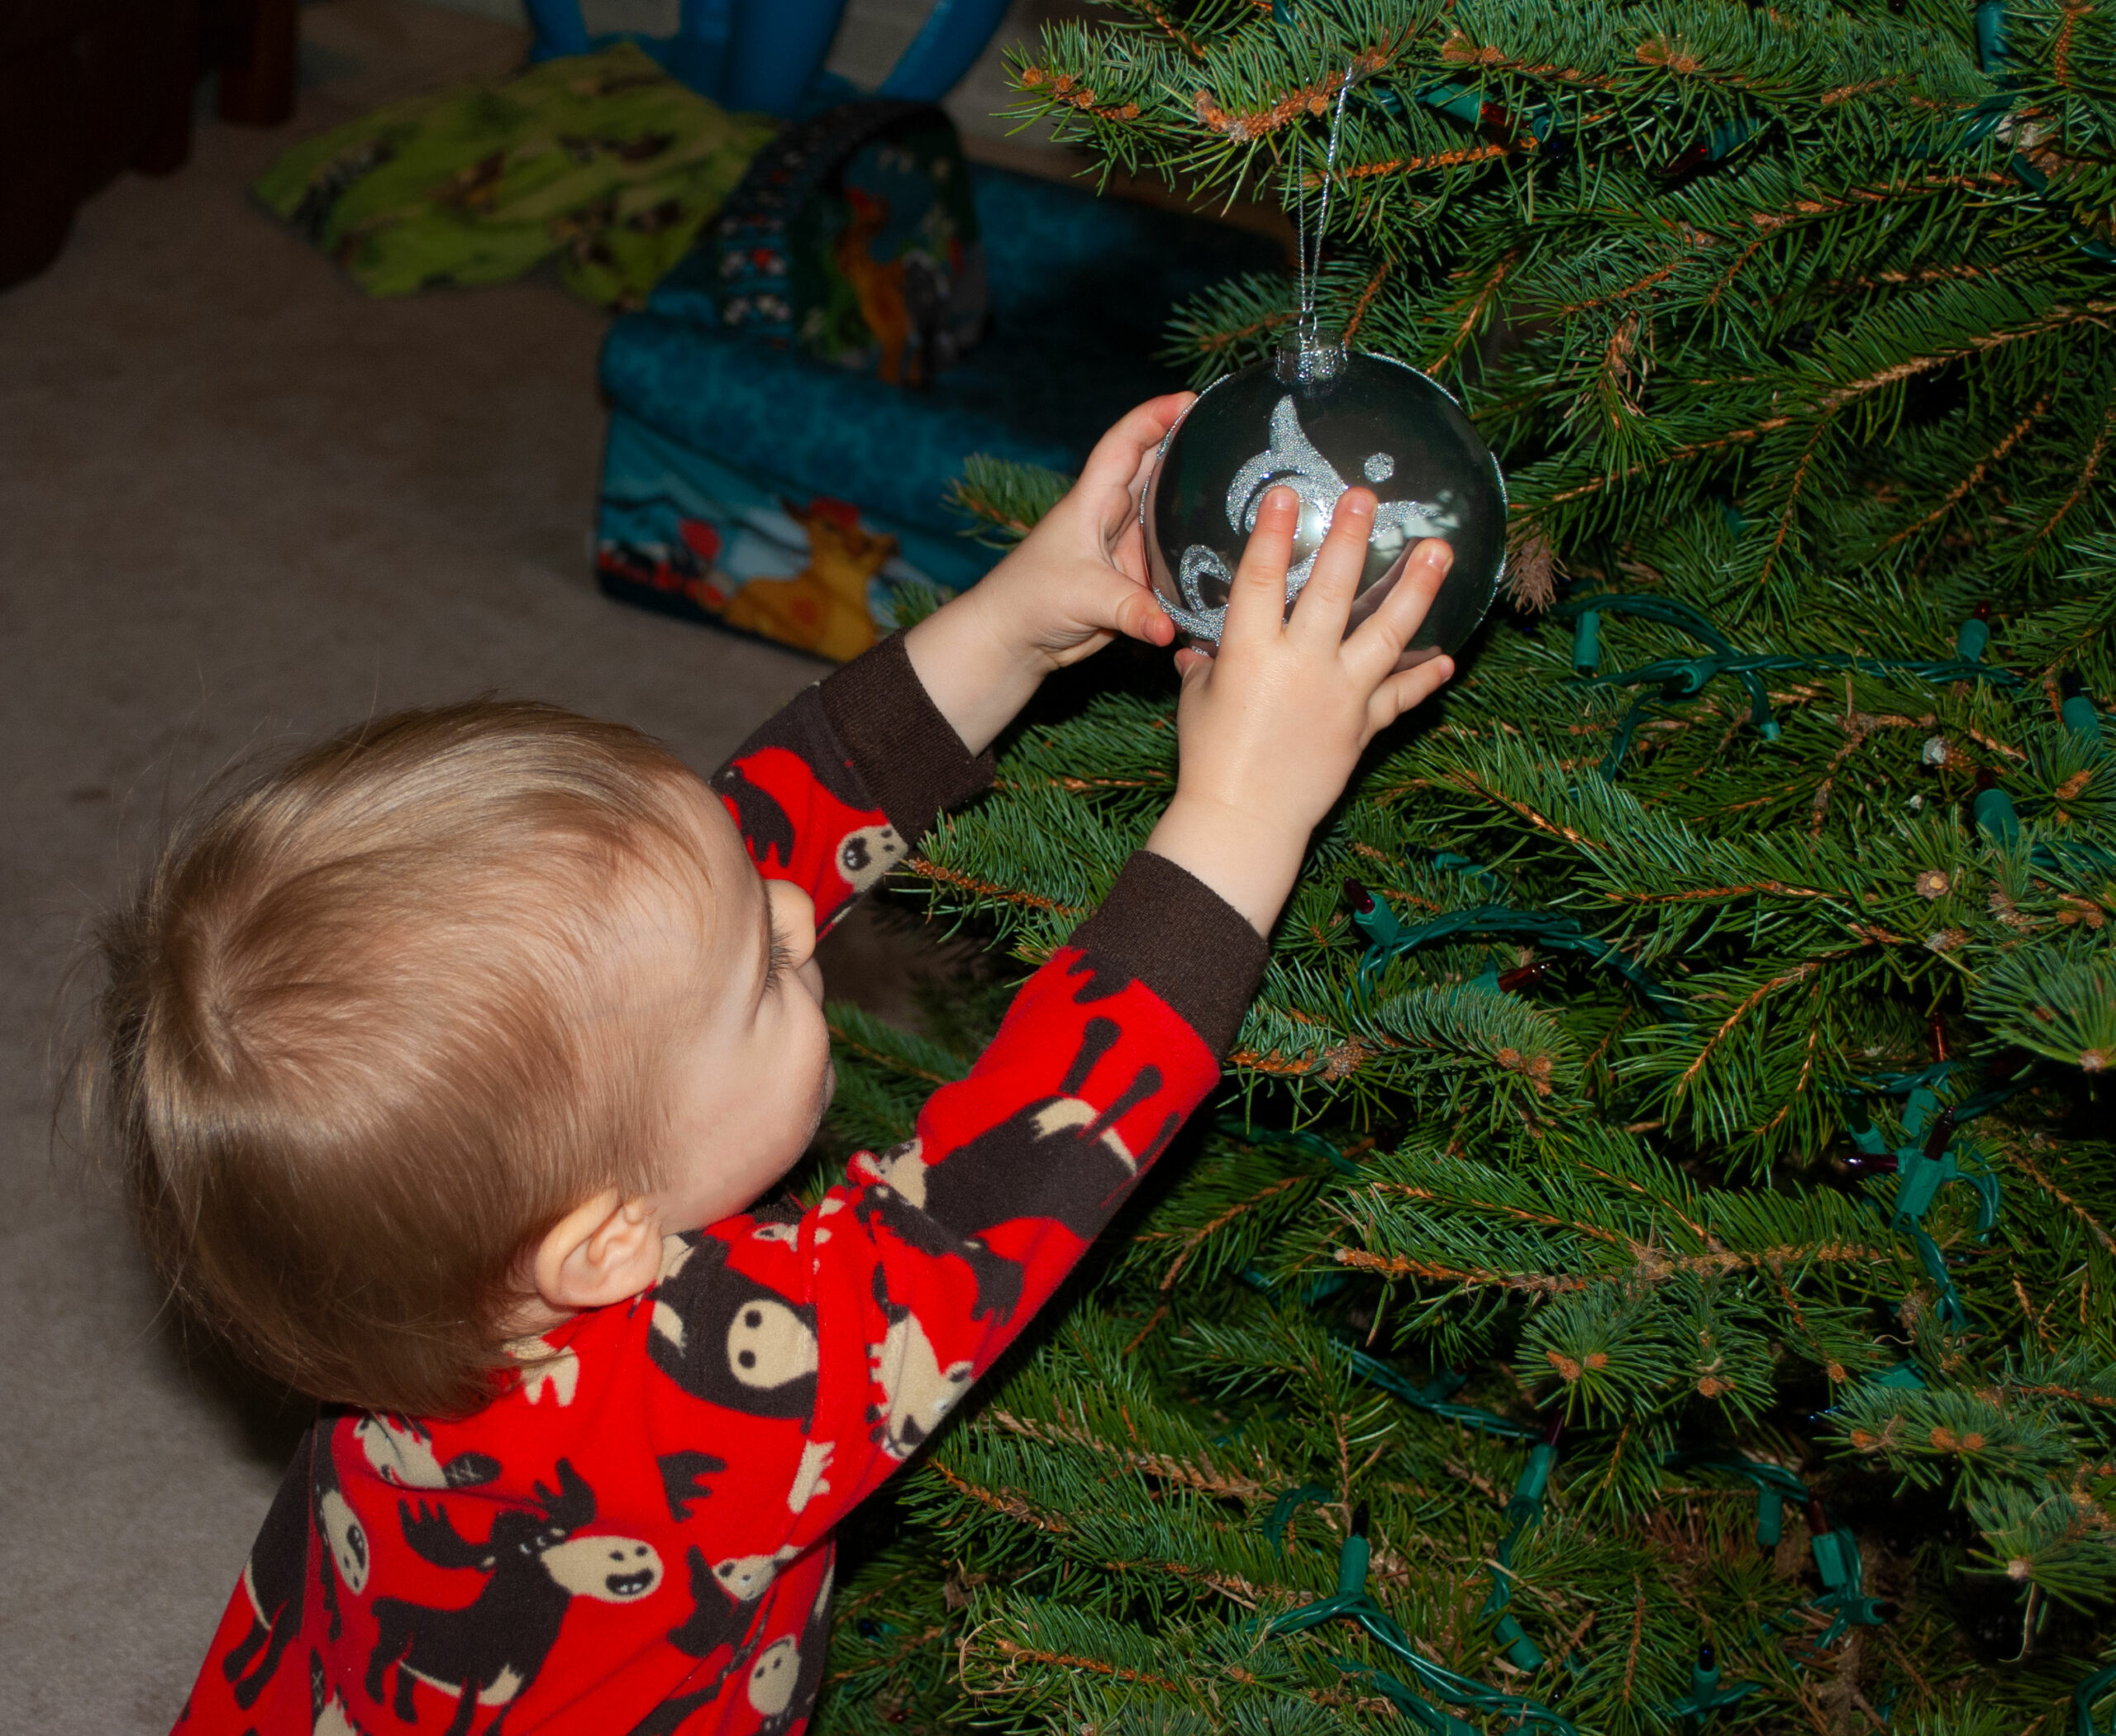 Putting an Ornament on a Christmas Tree